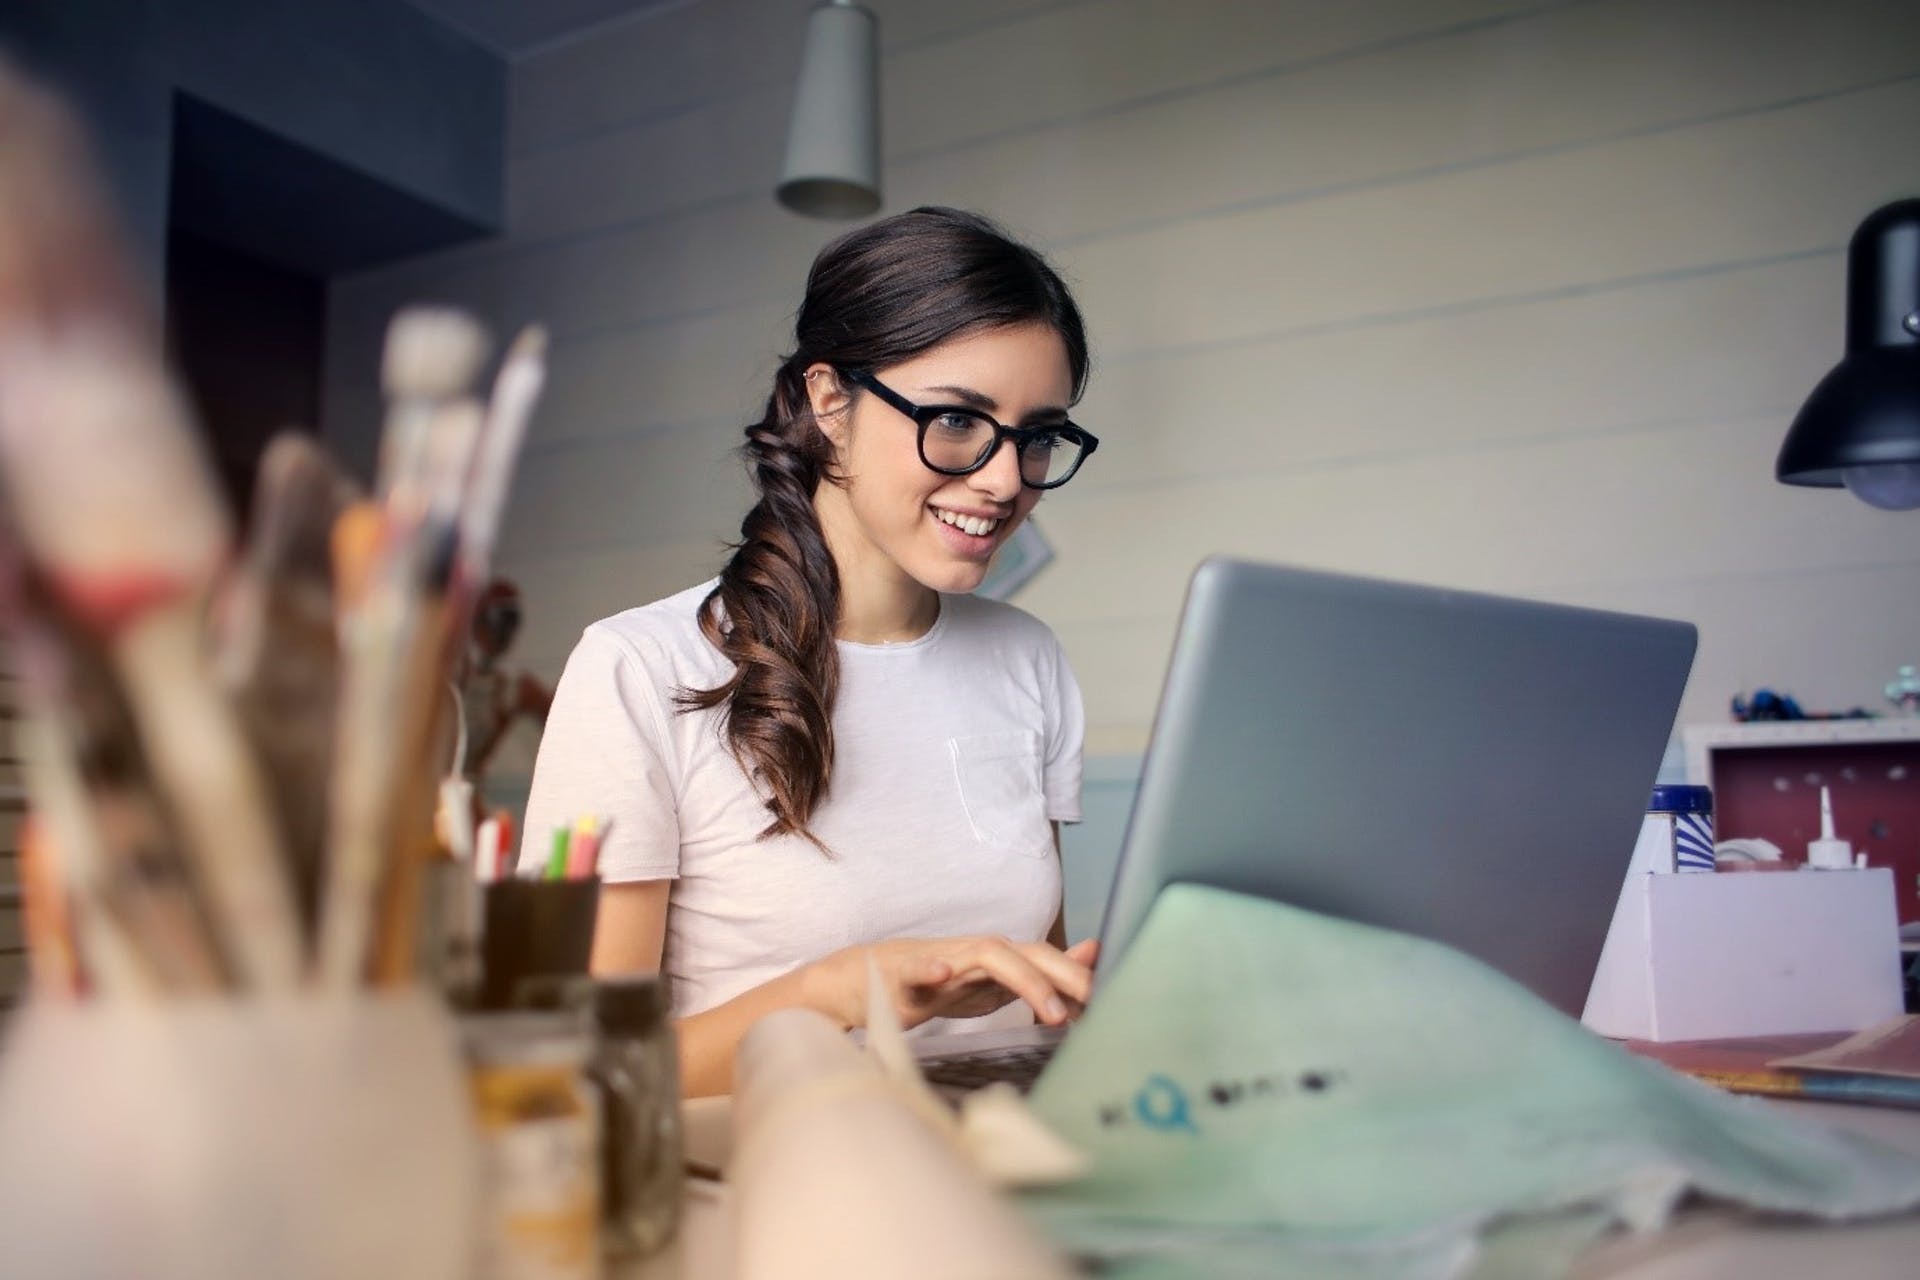 Brunette woman in glasses using her laptop while seated at a desk